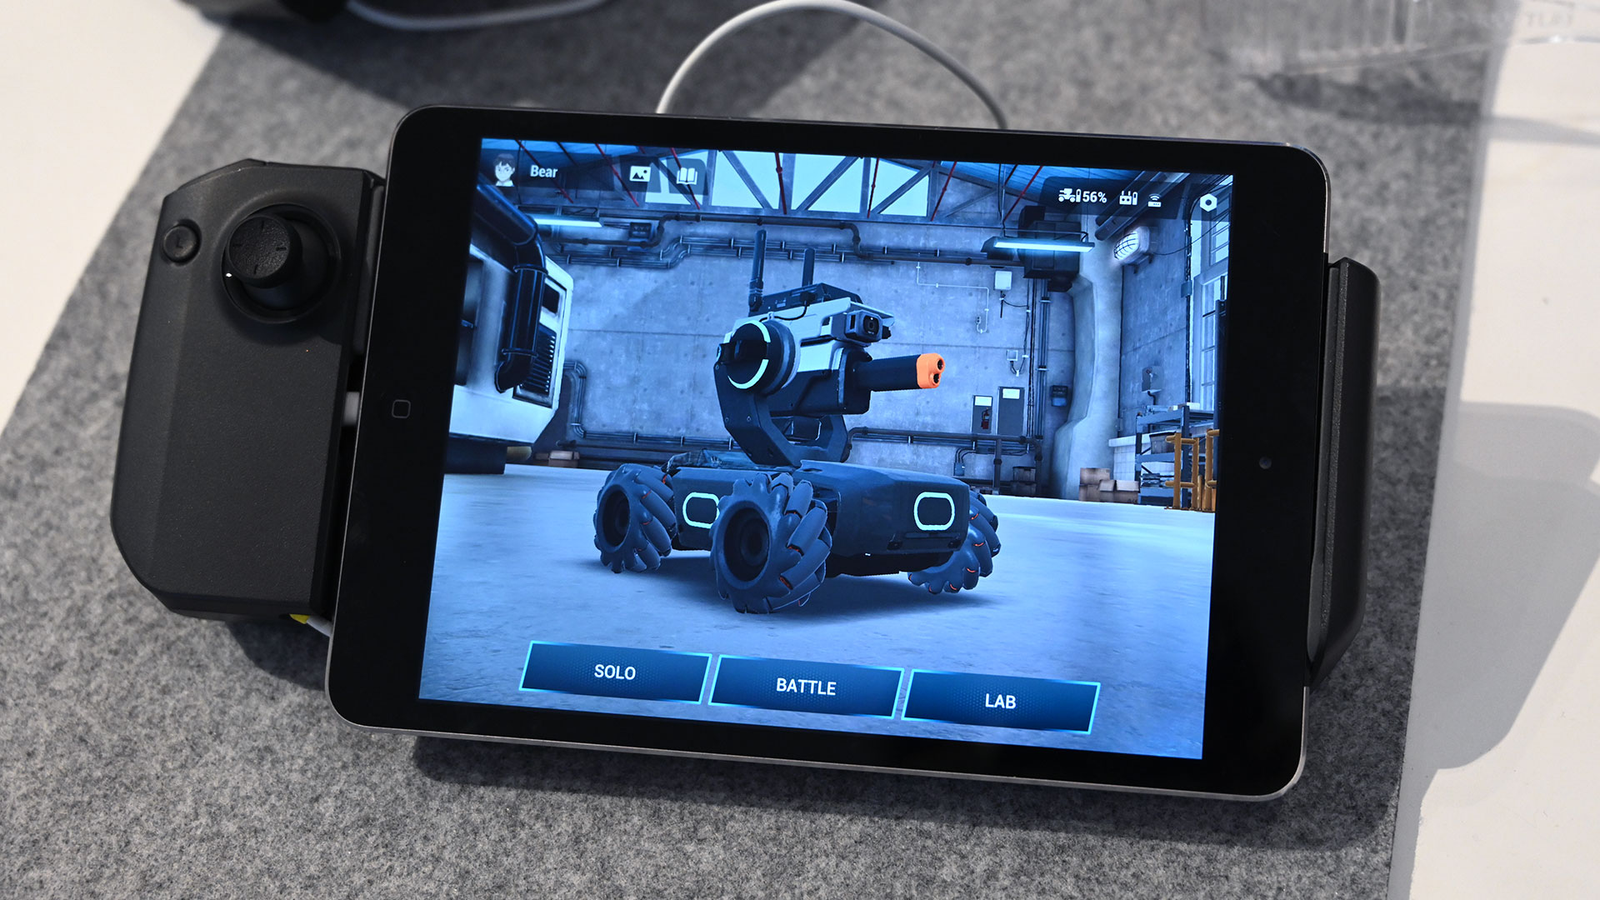 Here's a shot of DJI's app for the Robomaster.